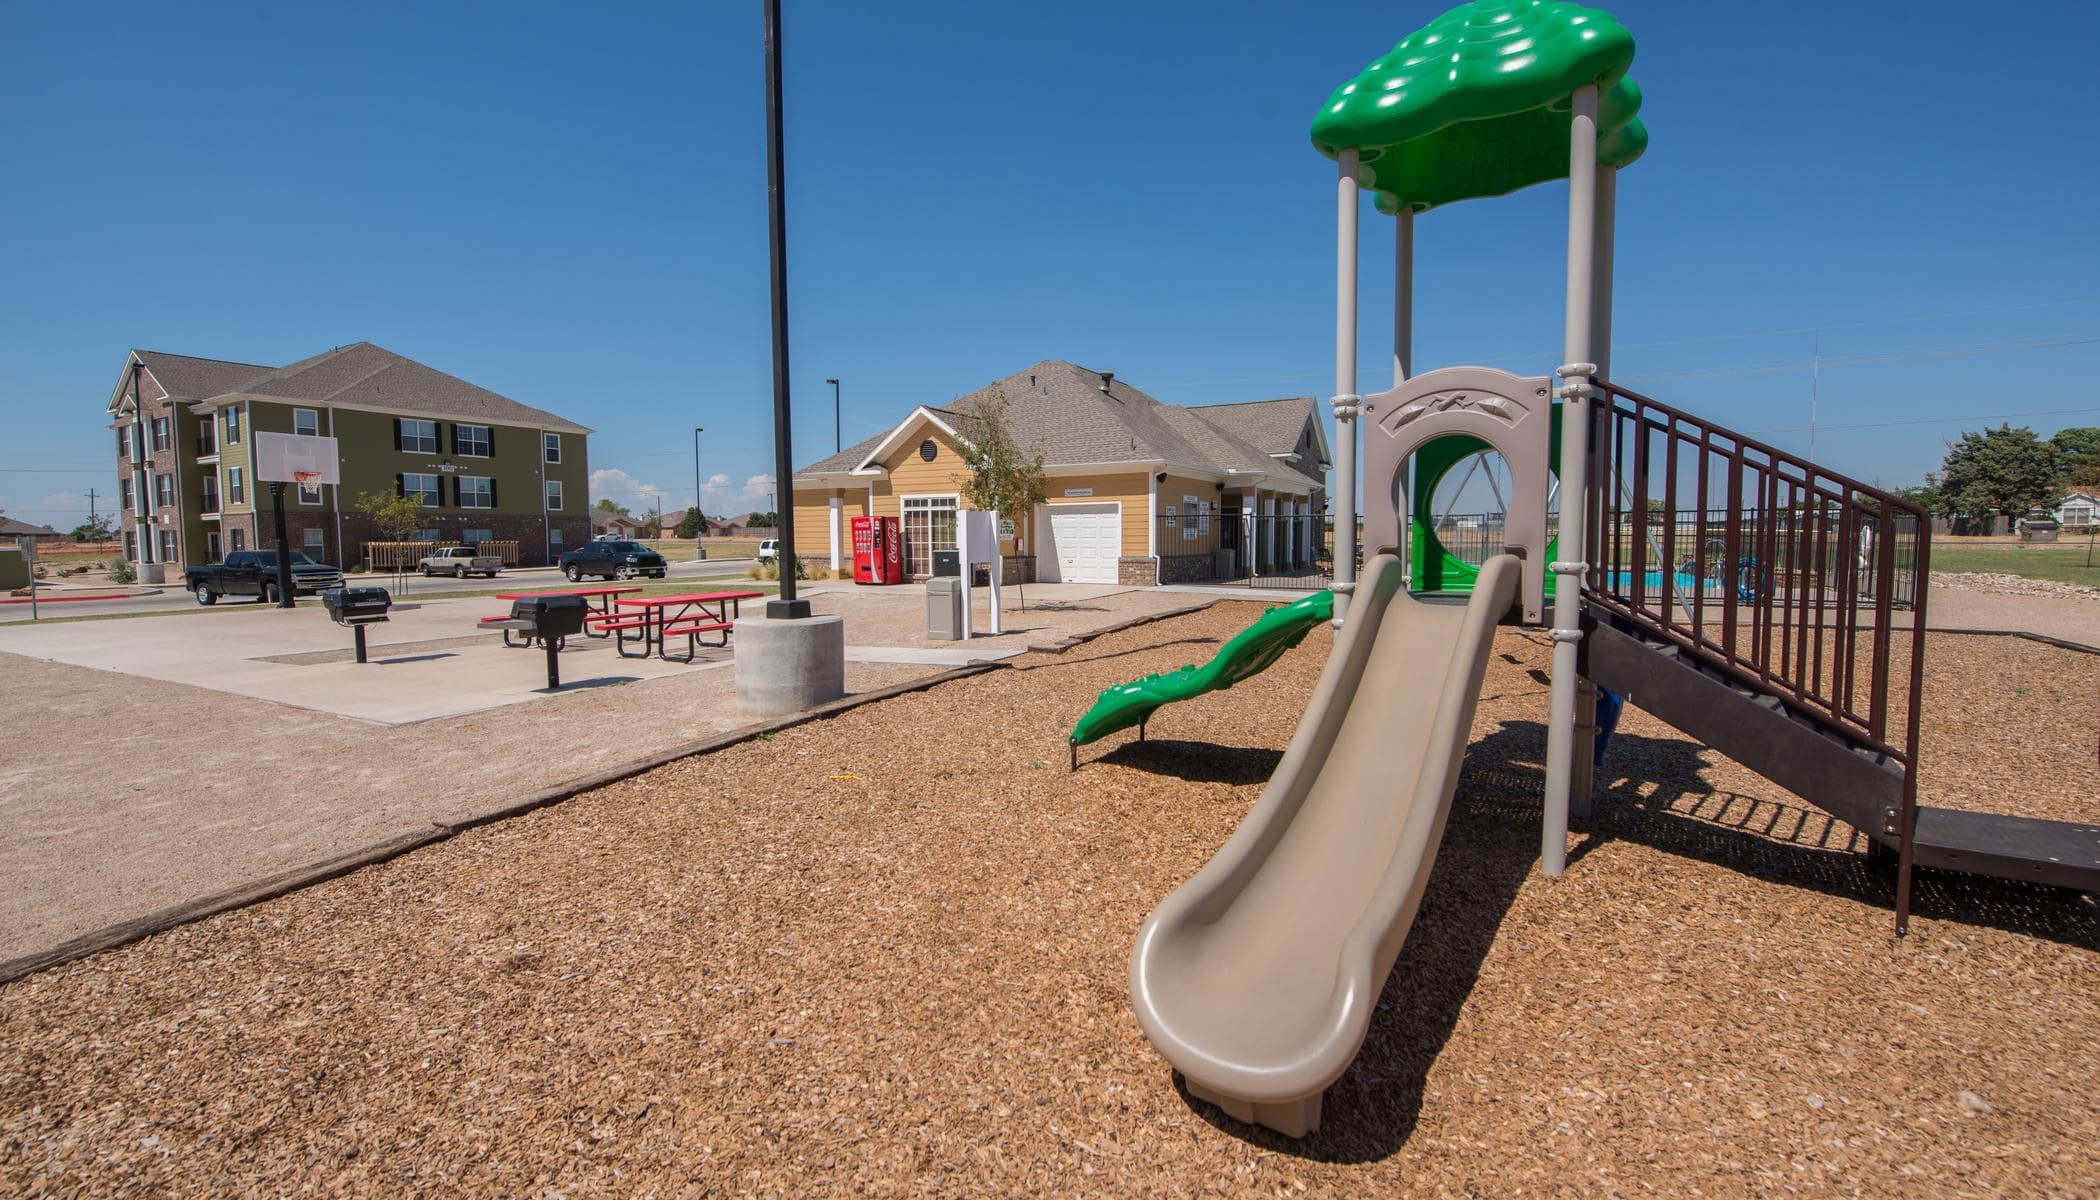 Children play area at Lubbock, Texas